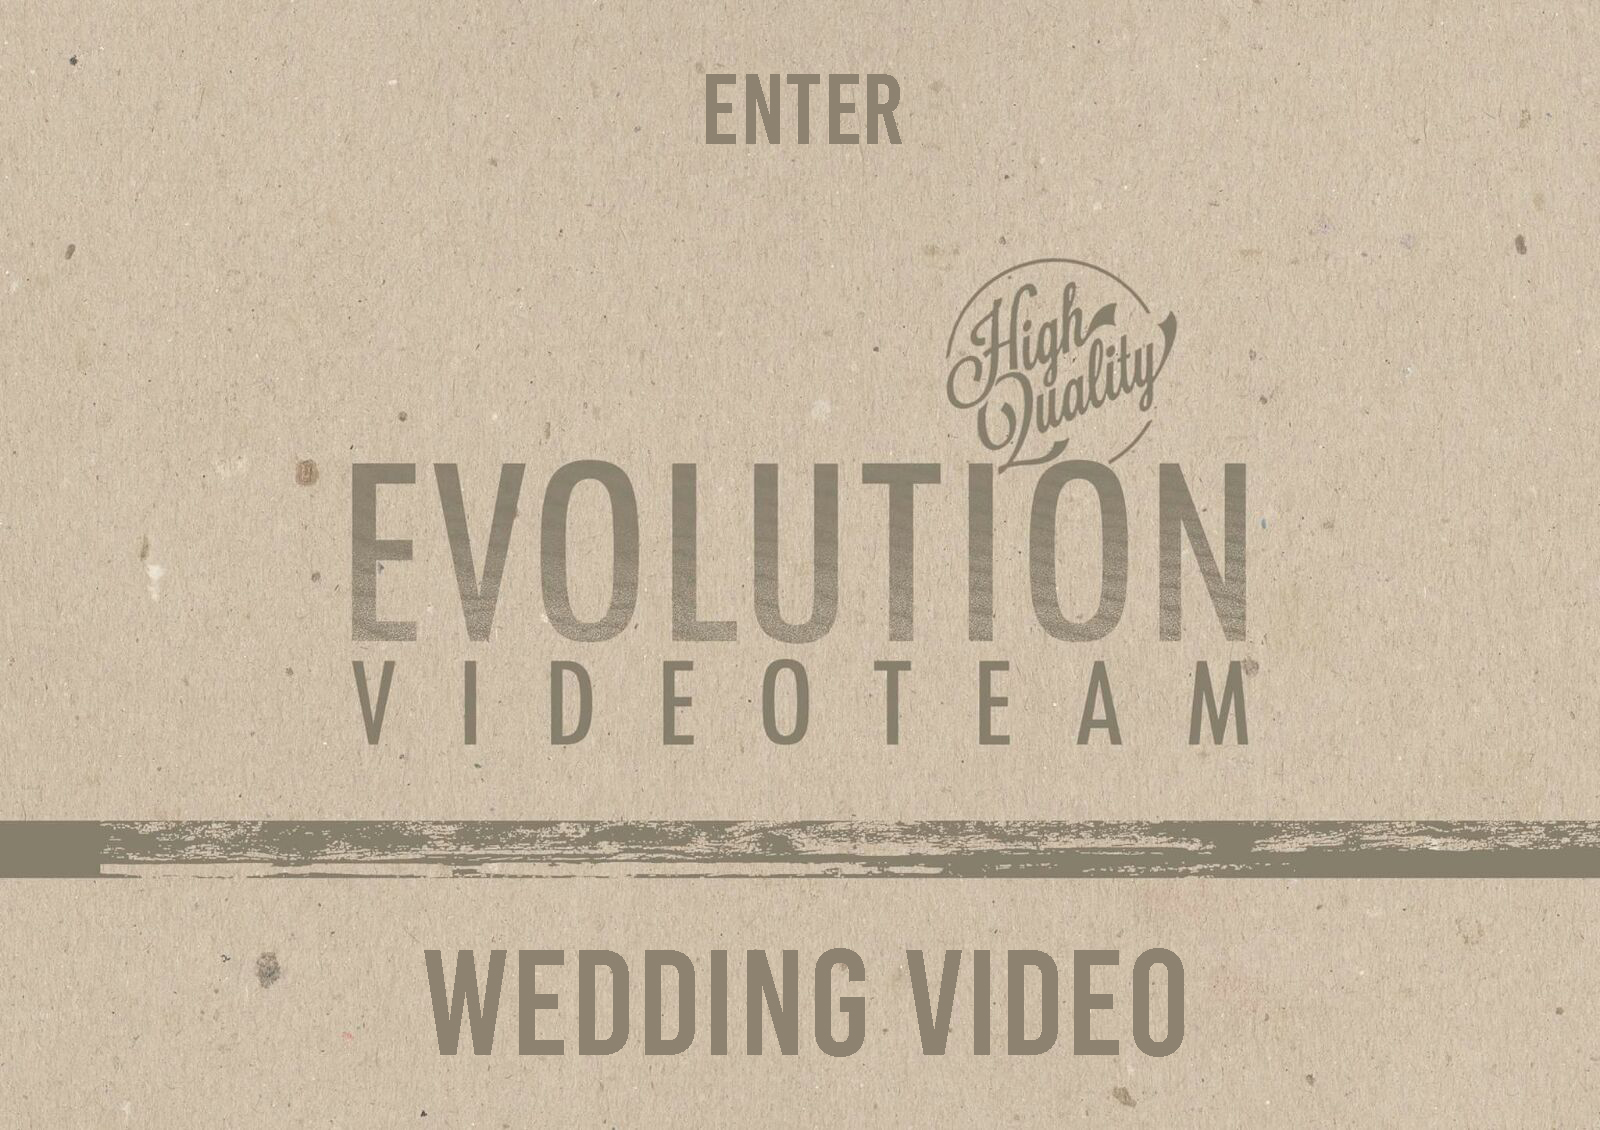 Evolution Video Team